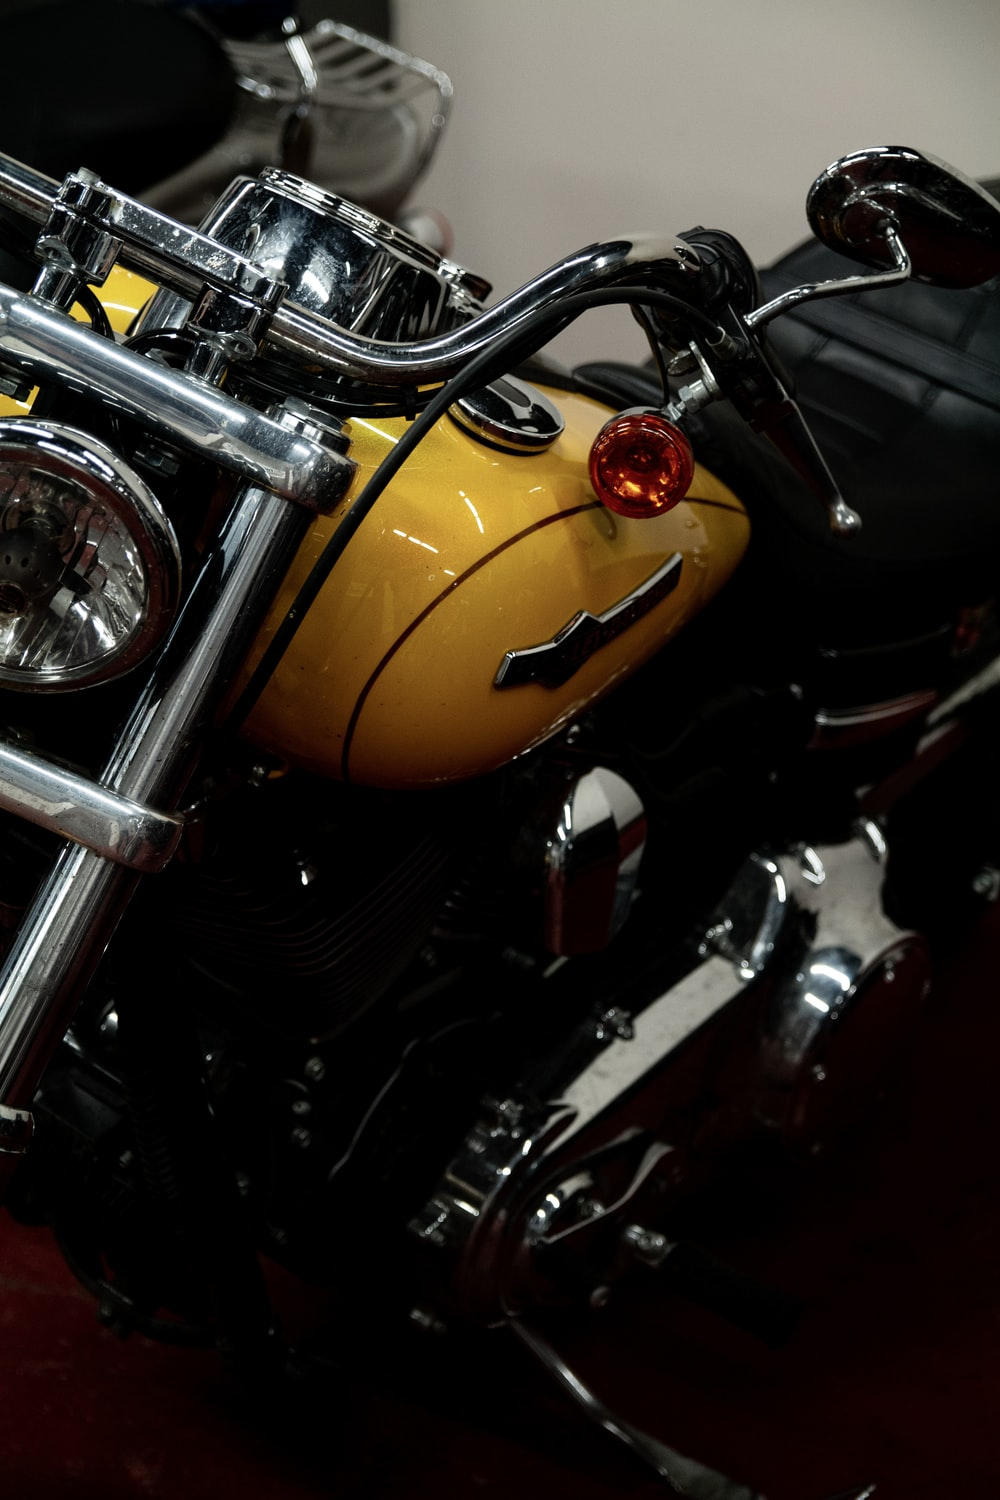 yellow and black motorcycle